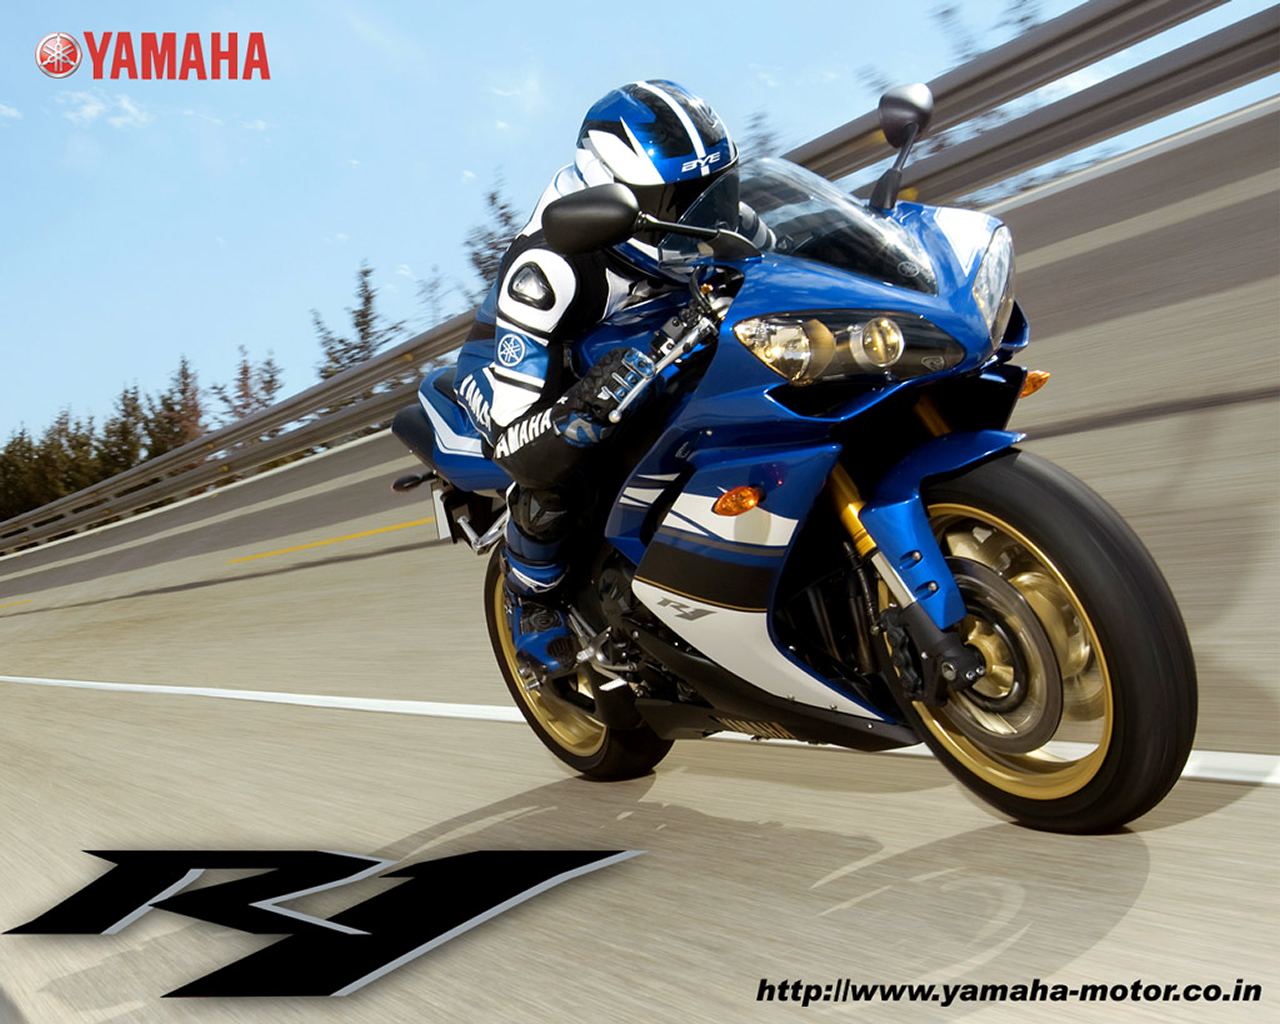 11 Responses to Yamaha YZF R1 Exclusive Wallpapers 1280x1024